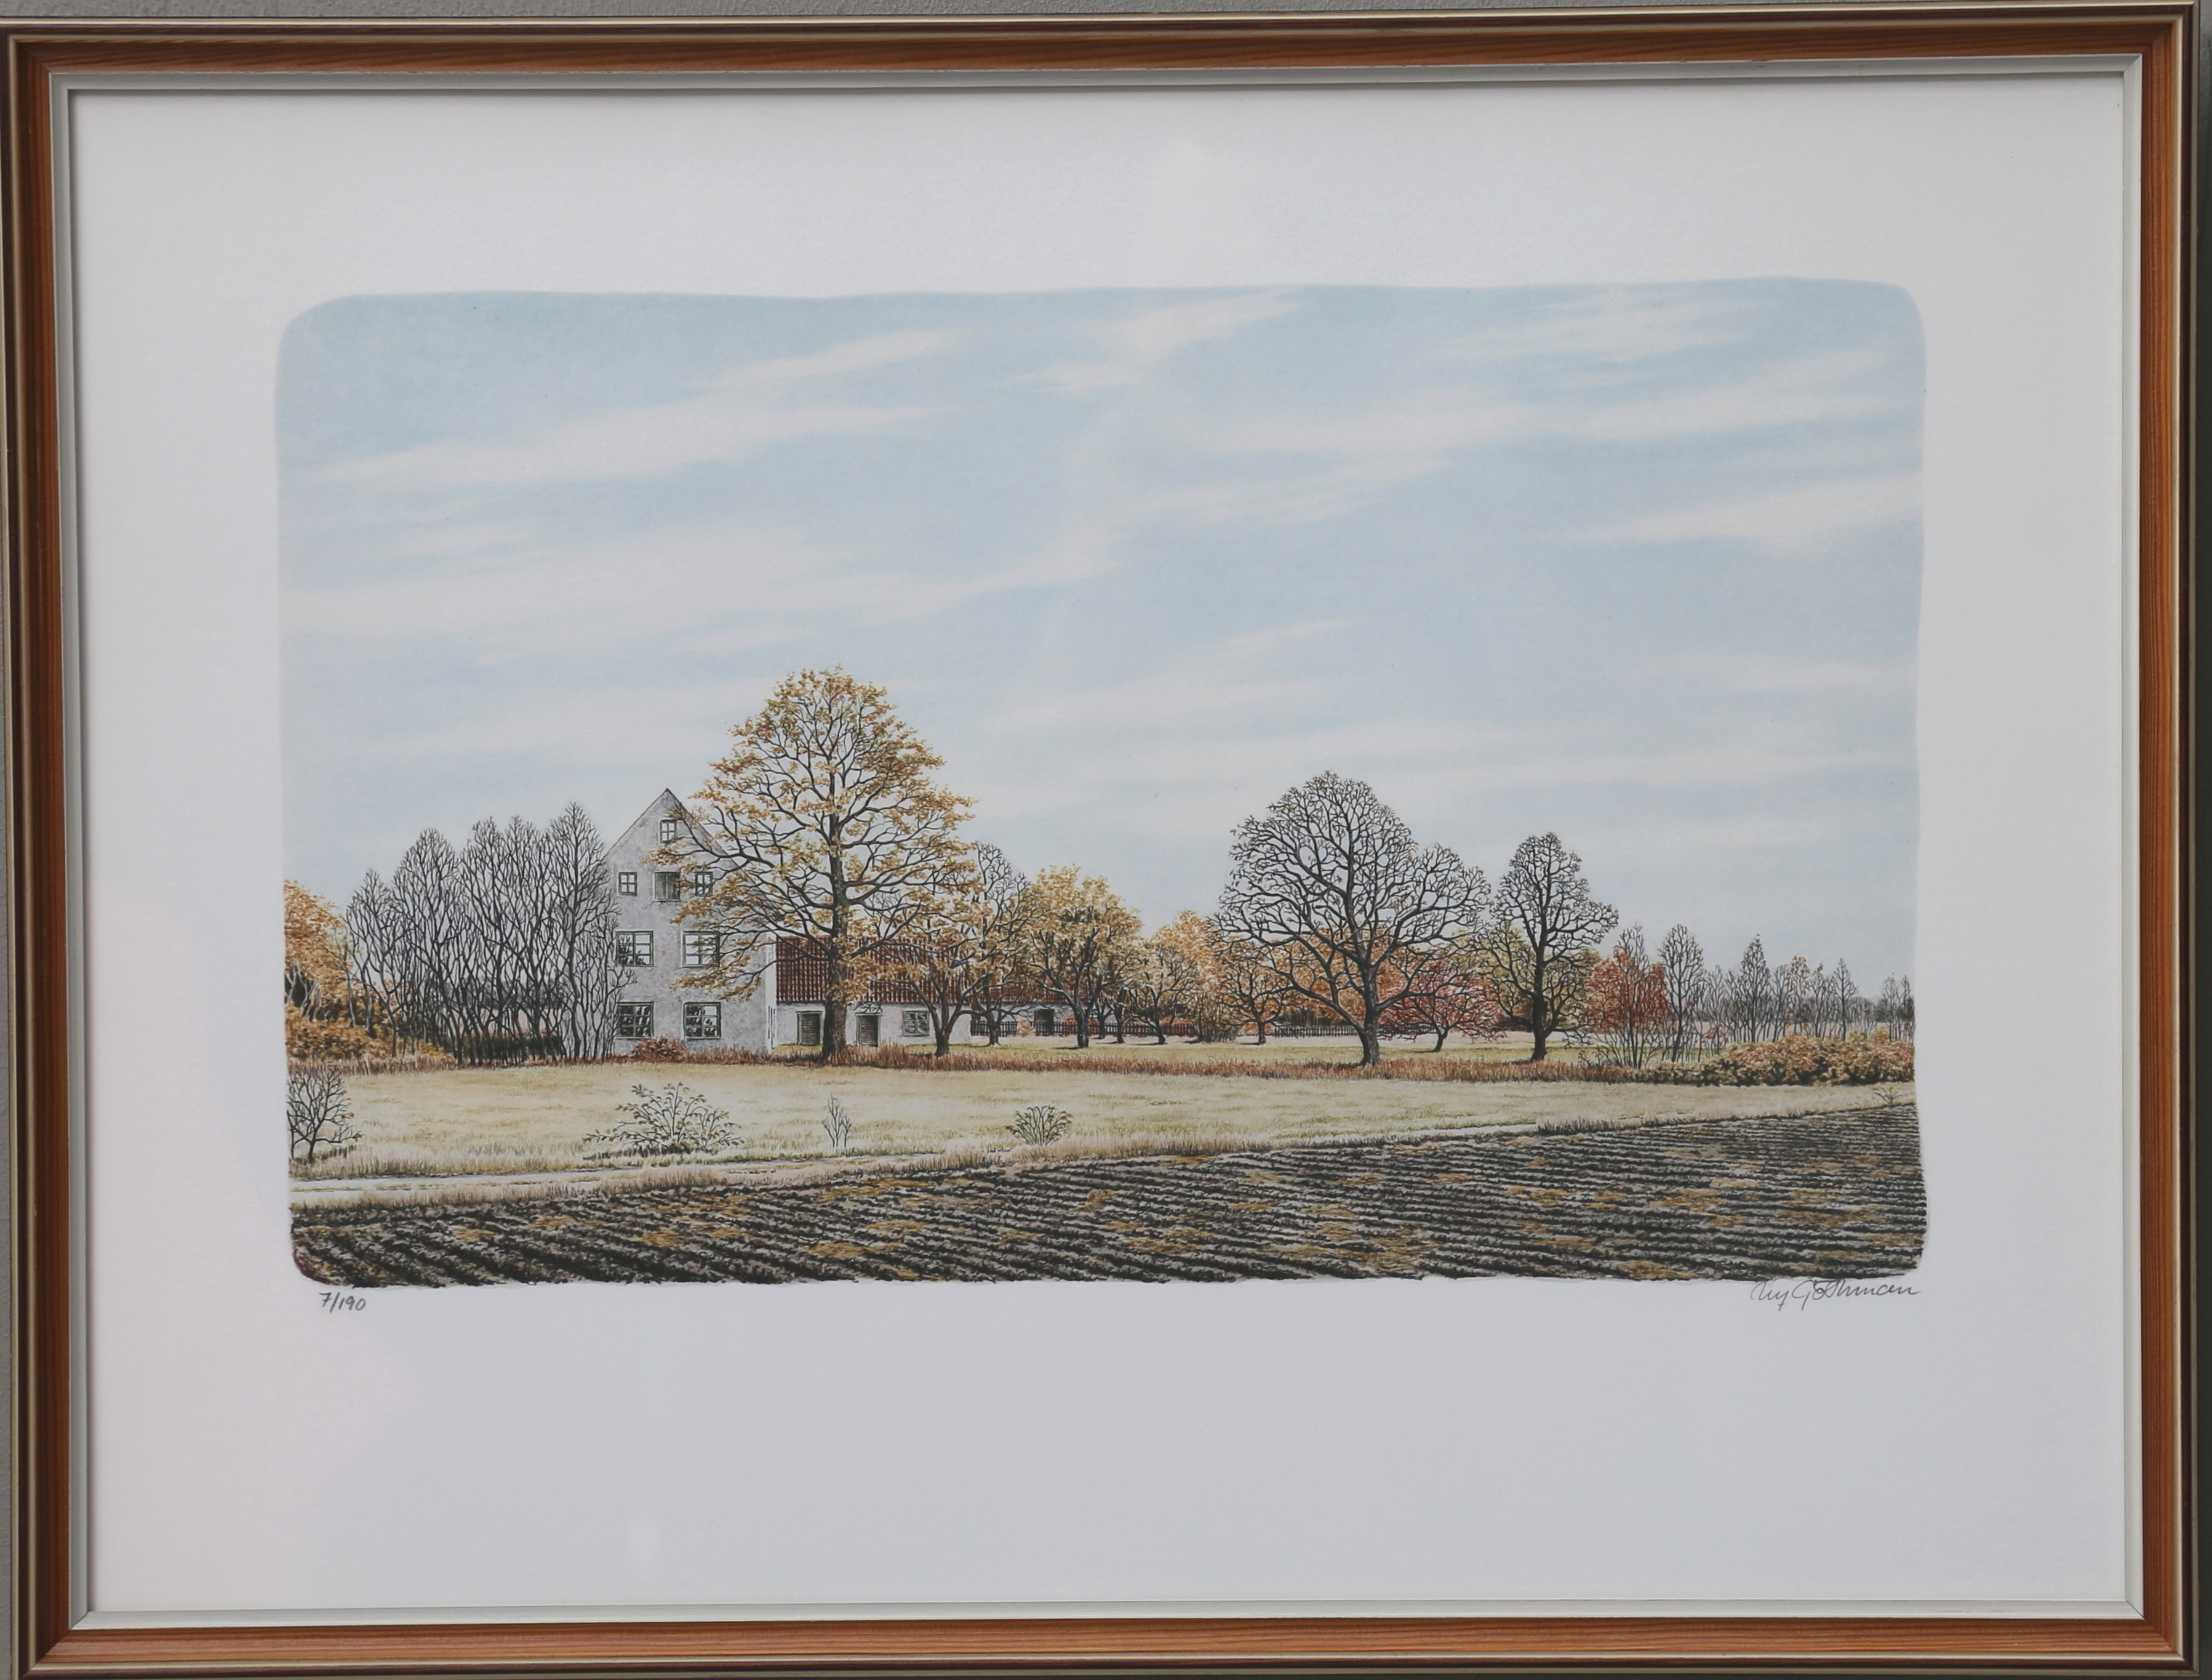 Ulf Gothman Color Lithograph Signed And Numbered 7 190 Art Graphic Auctionet